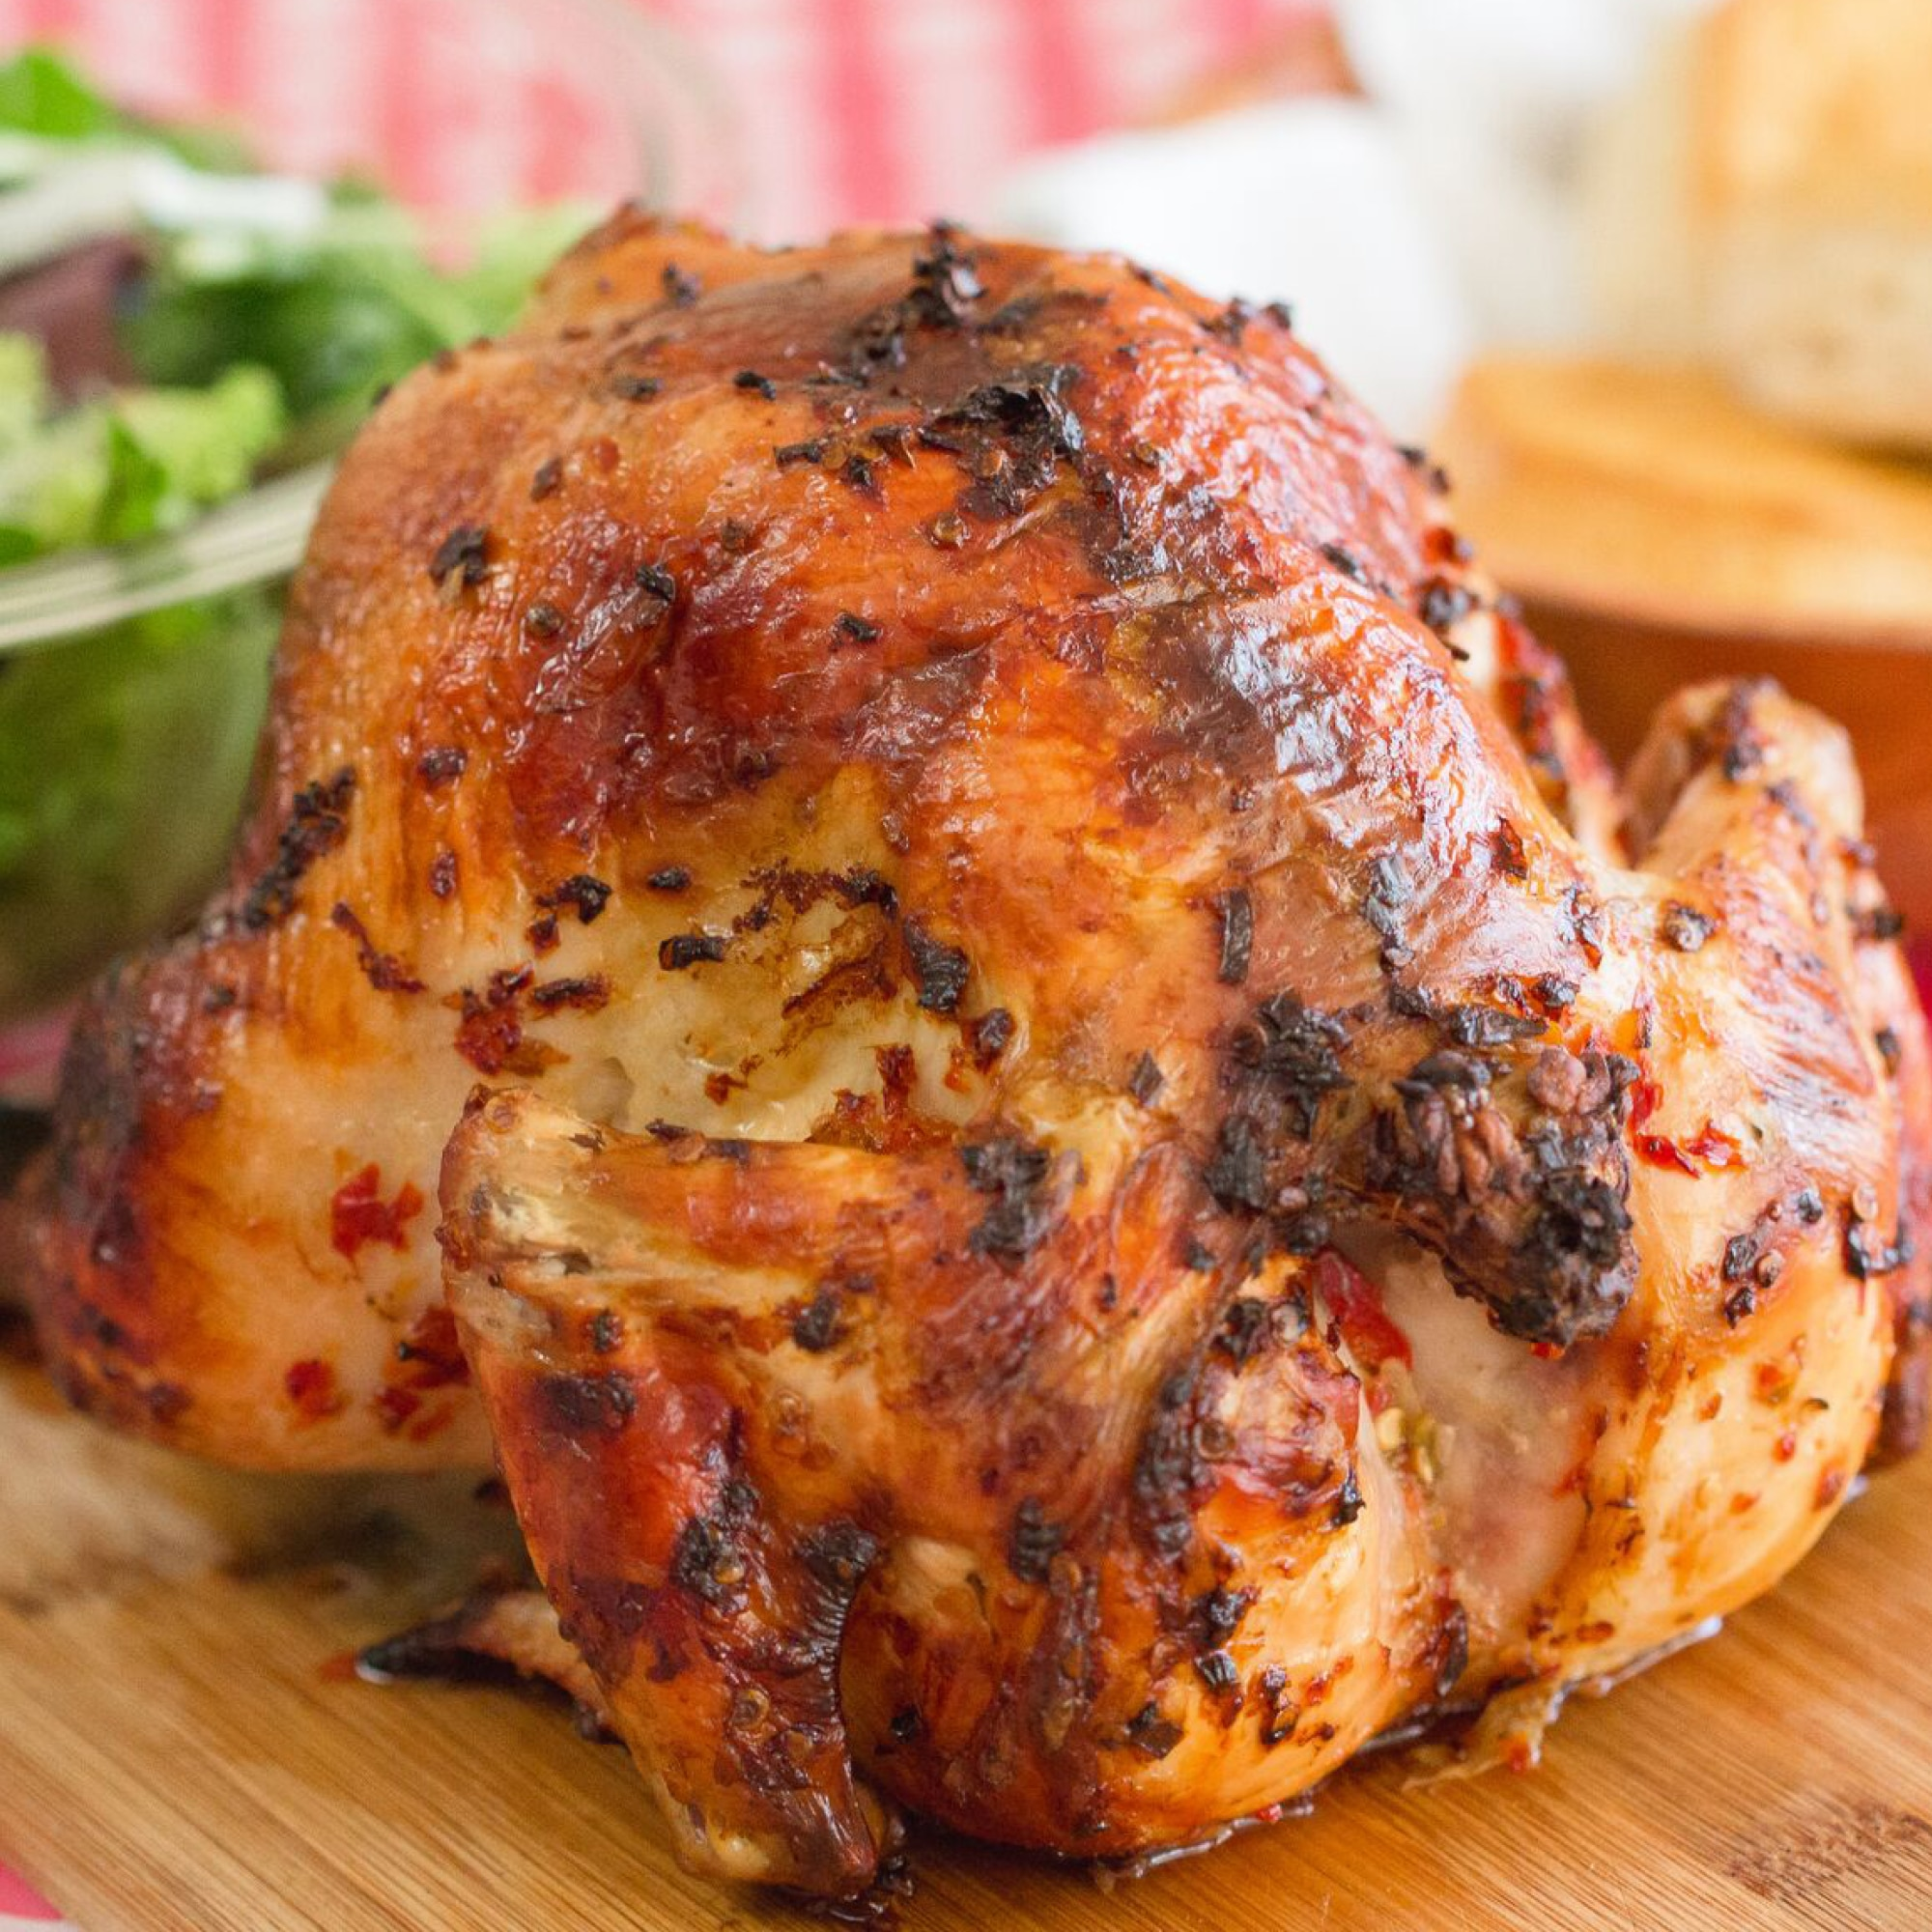 Stuck in a dinner rut and looking for something new and creative? While Beer Can Chicken is nothing new, this recipe uses a secret and creative ingredient...you'll never guess what it is!